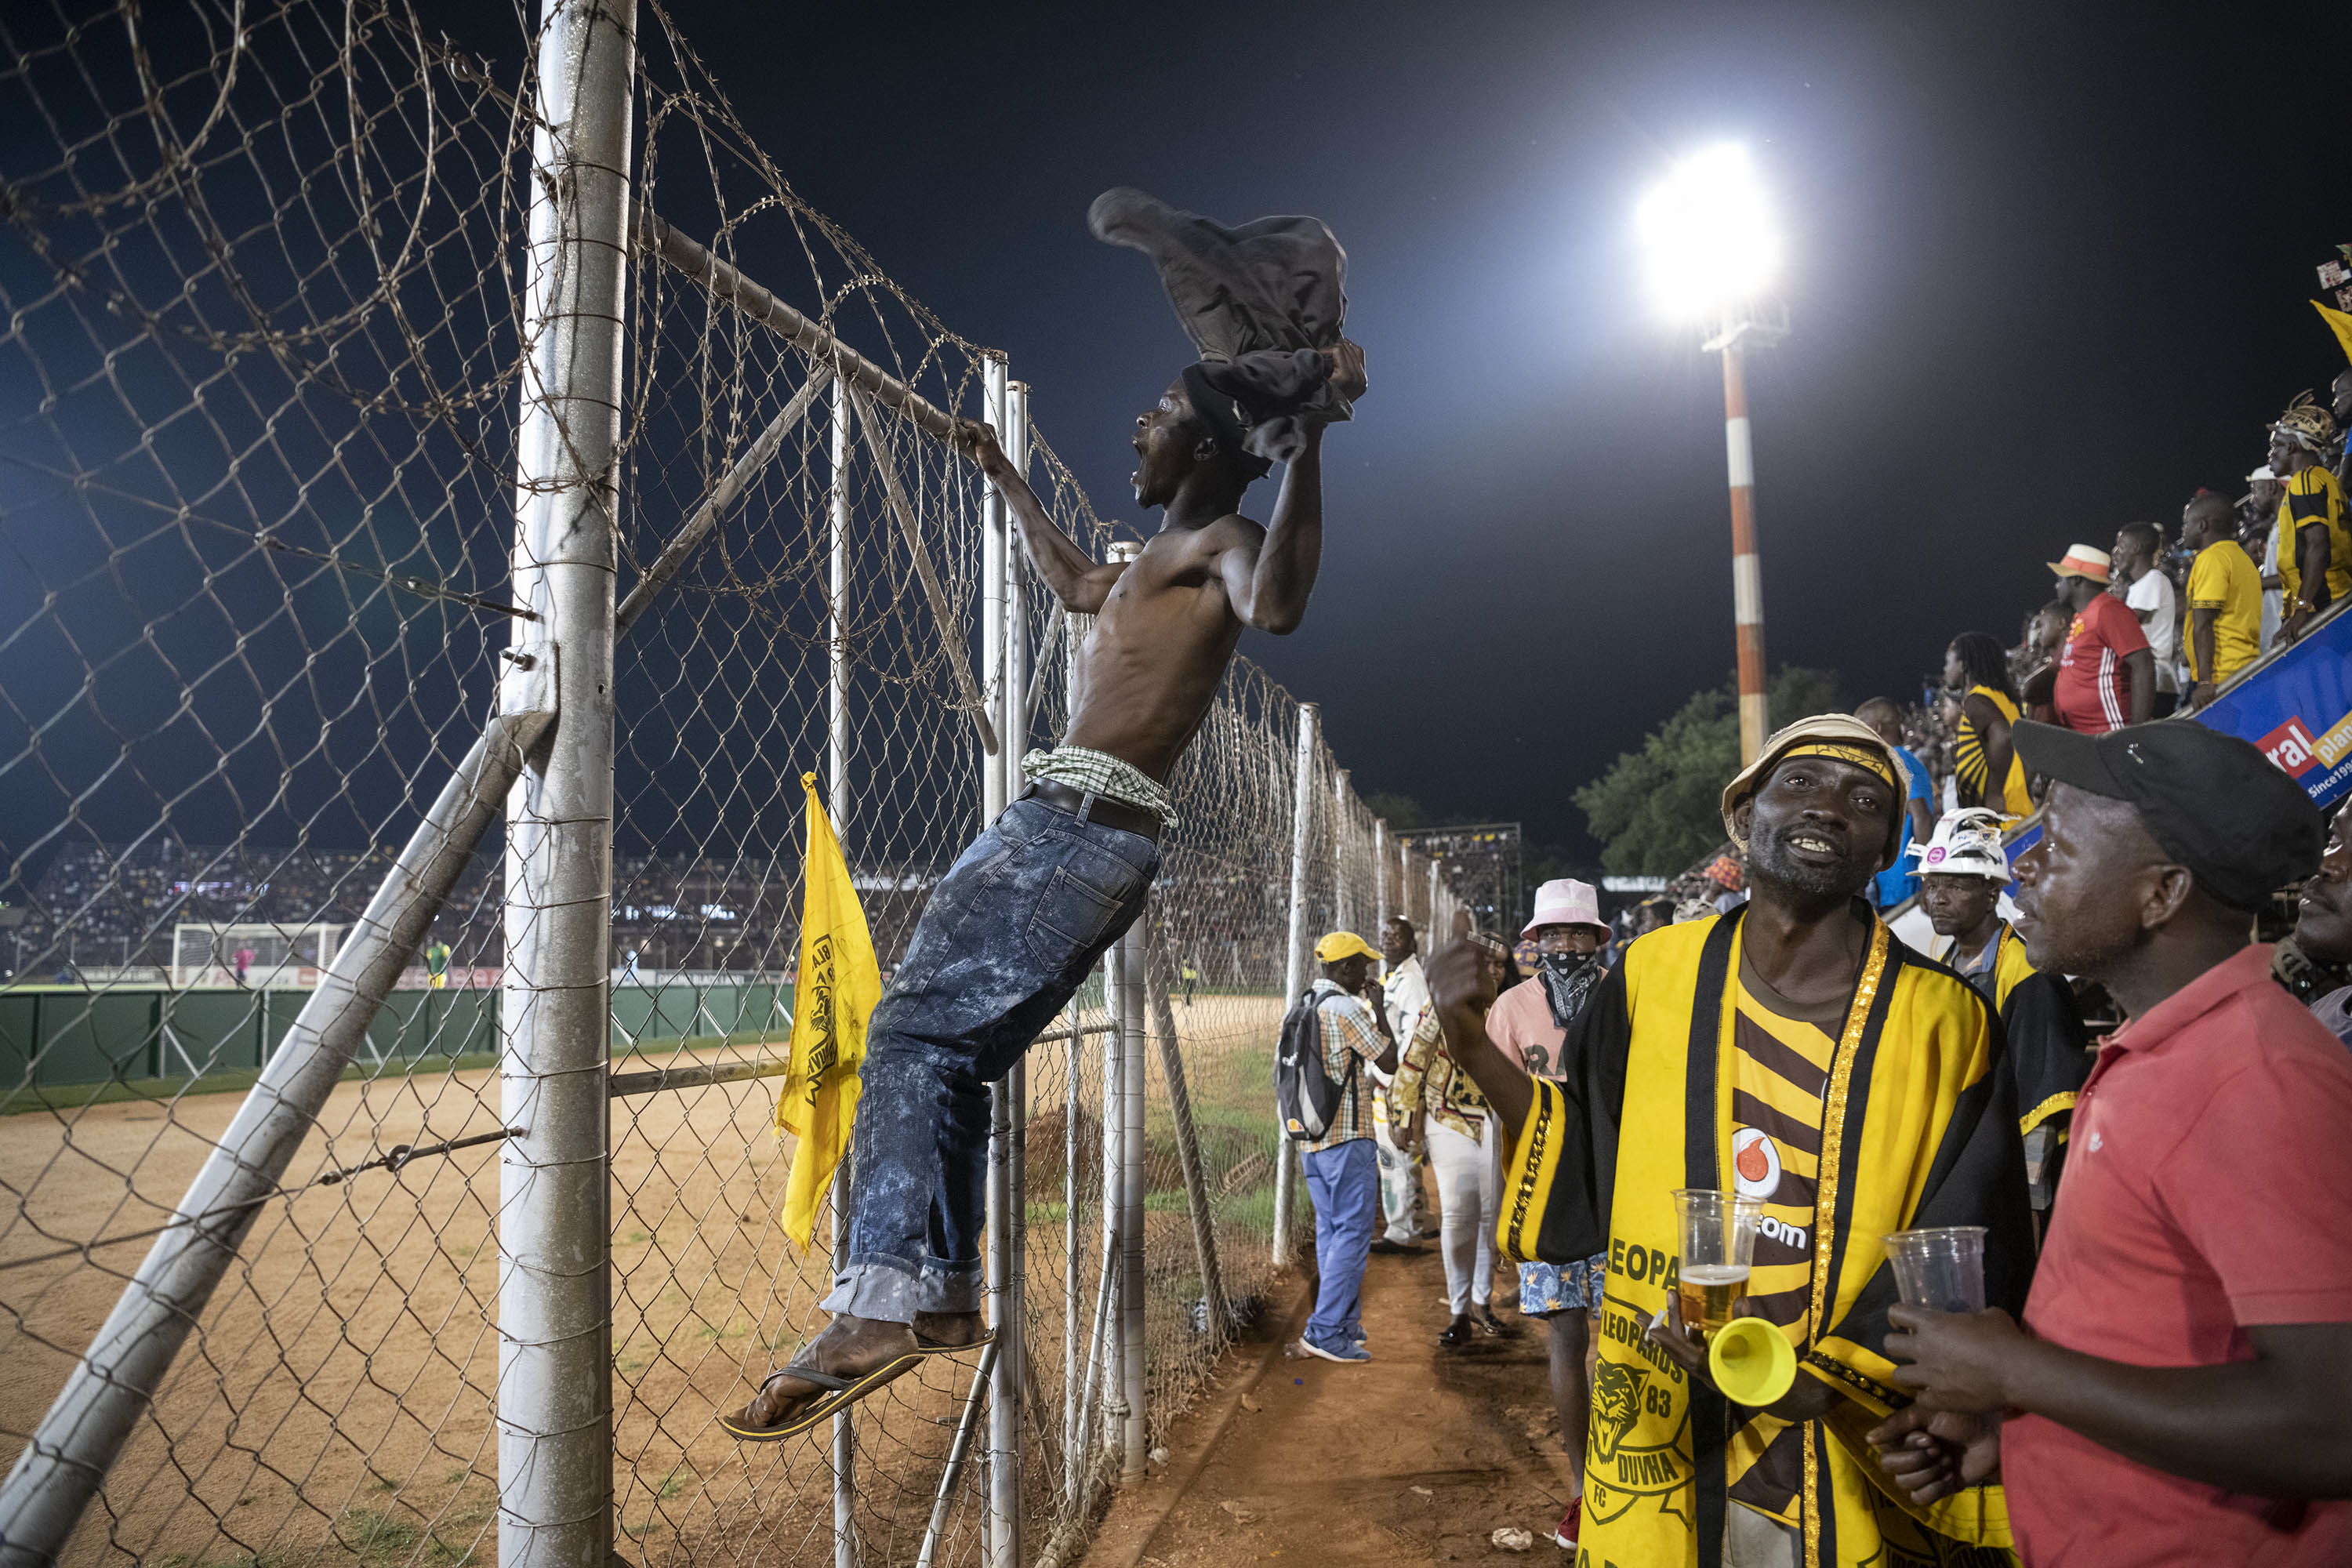 30 November 2019: A Black Leopards fan climbs the security fence in front of the Zamalek stand to berate the referee.